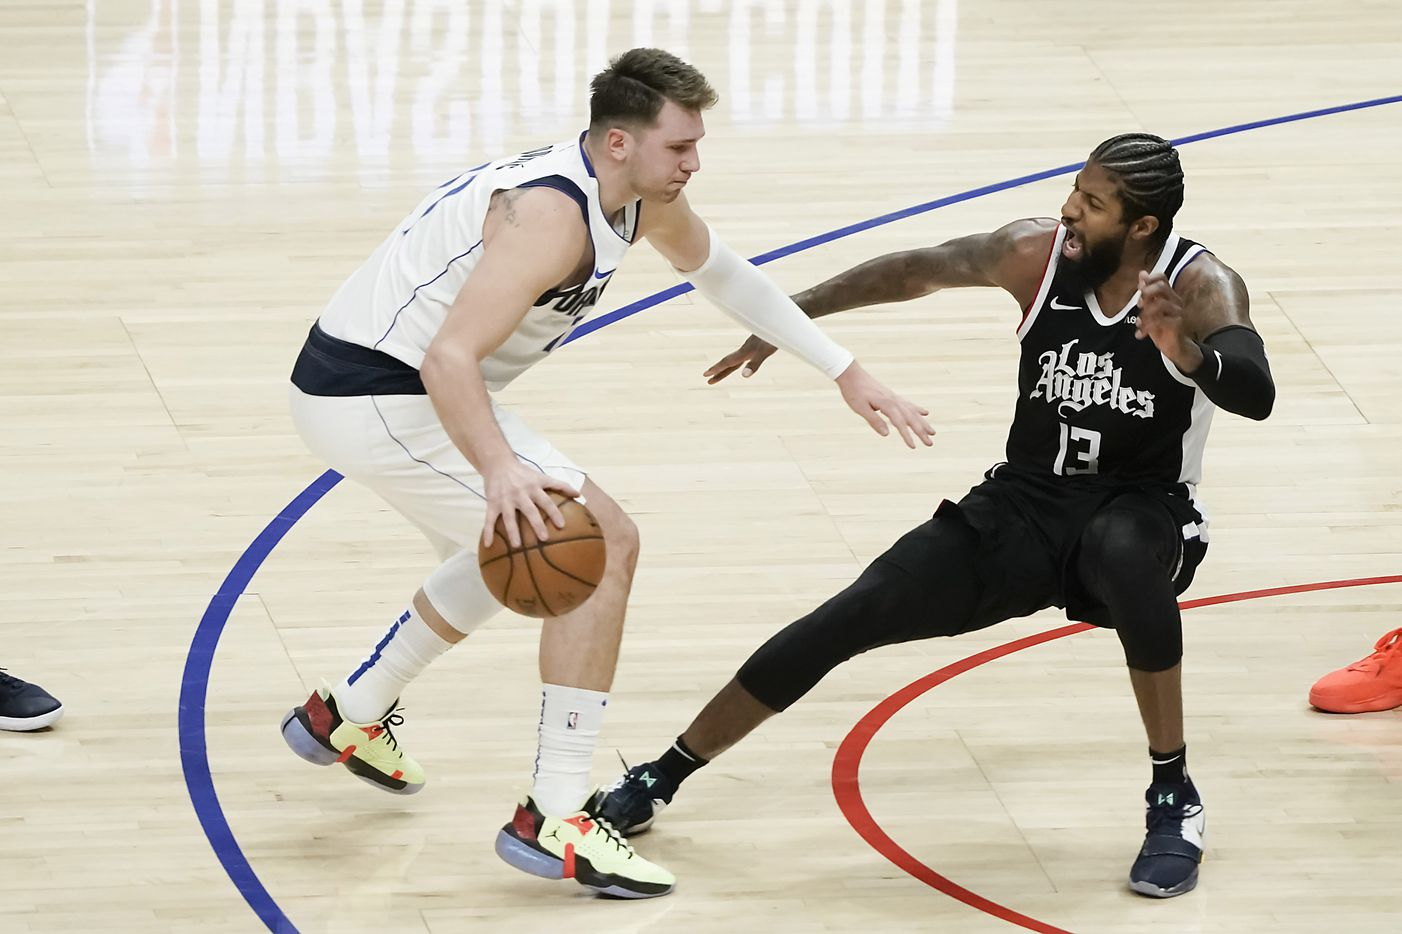 Dallas Mavericks guard Luka Doncic (77) is called for an offensive foul as LA Clippers guard Paul George (13) is knocked to the floor during the first half of an NBA basketball game at Staples Center on Saturday, May 22, 2021, in Los Angeles.